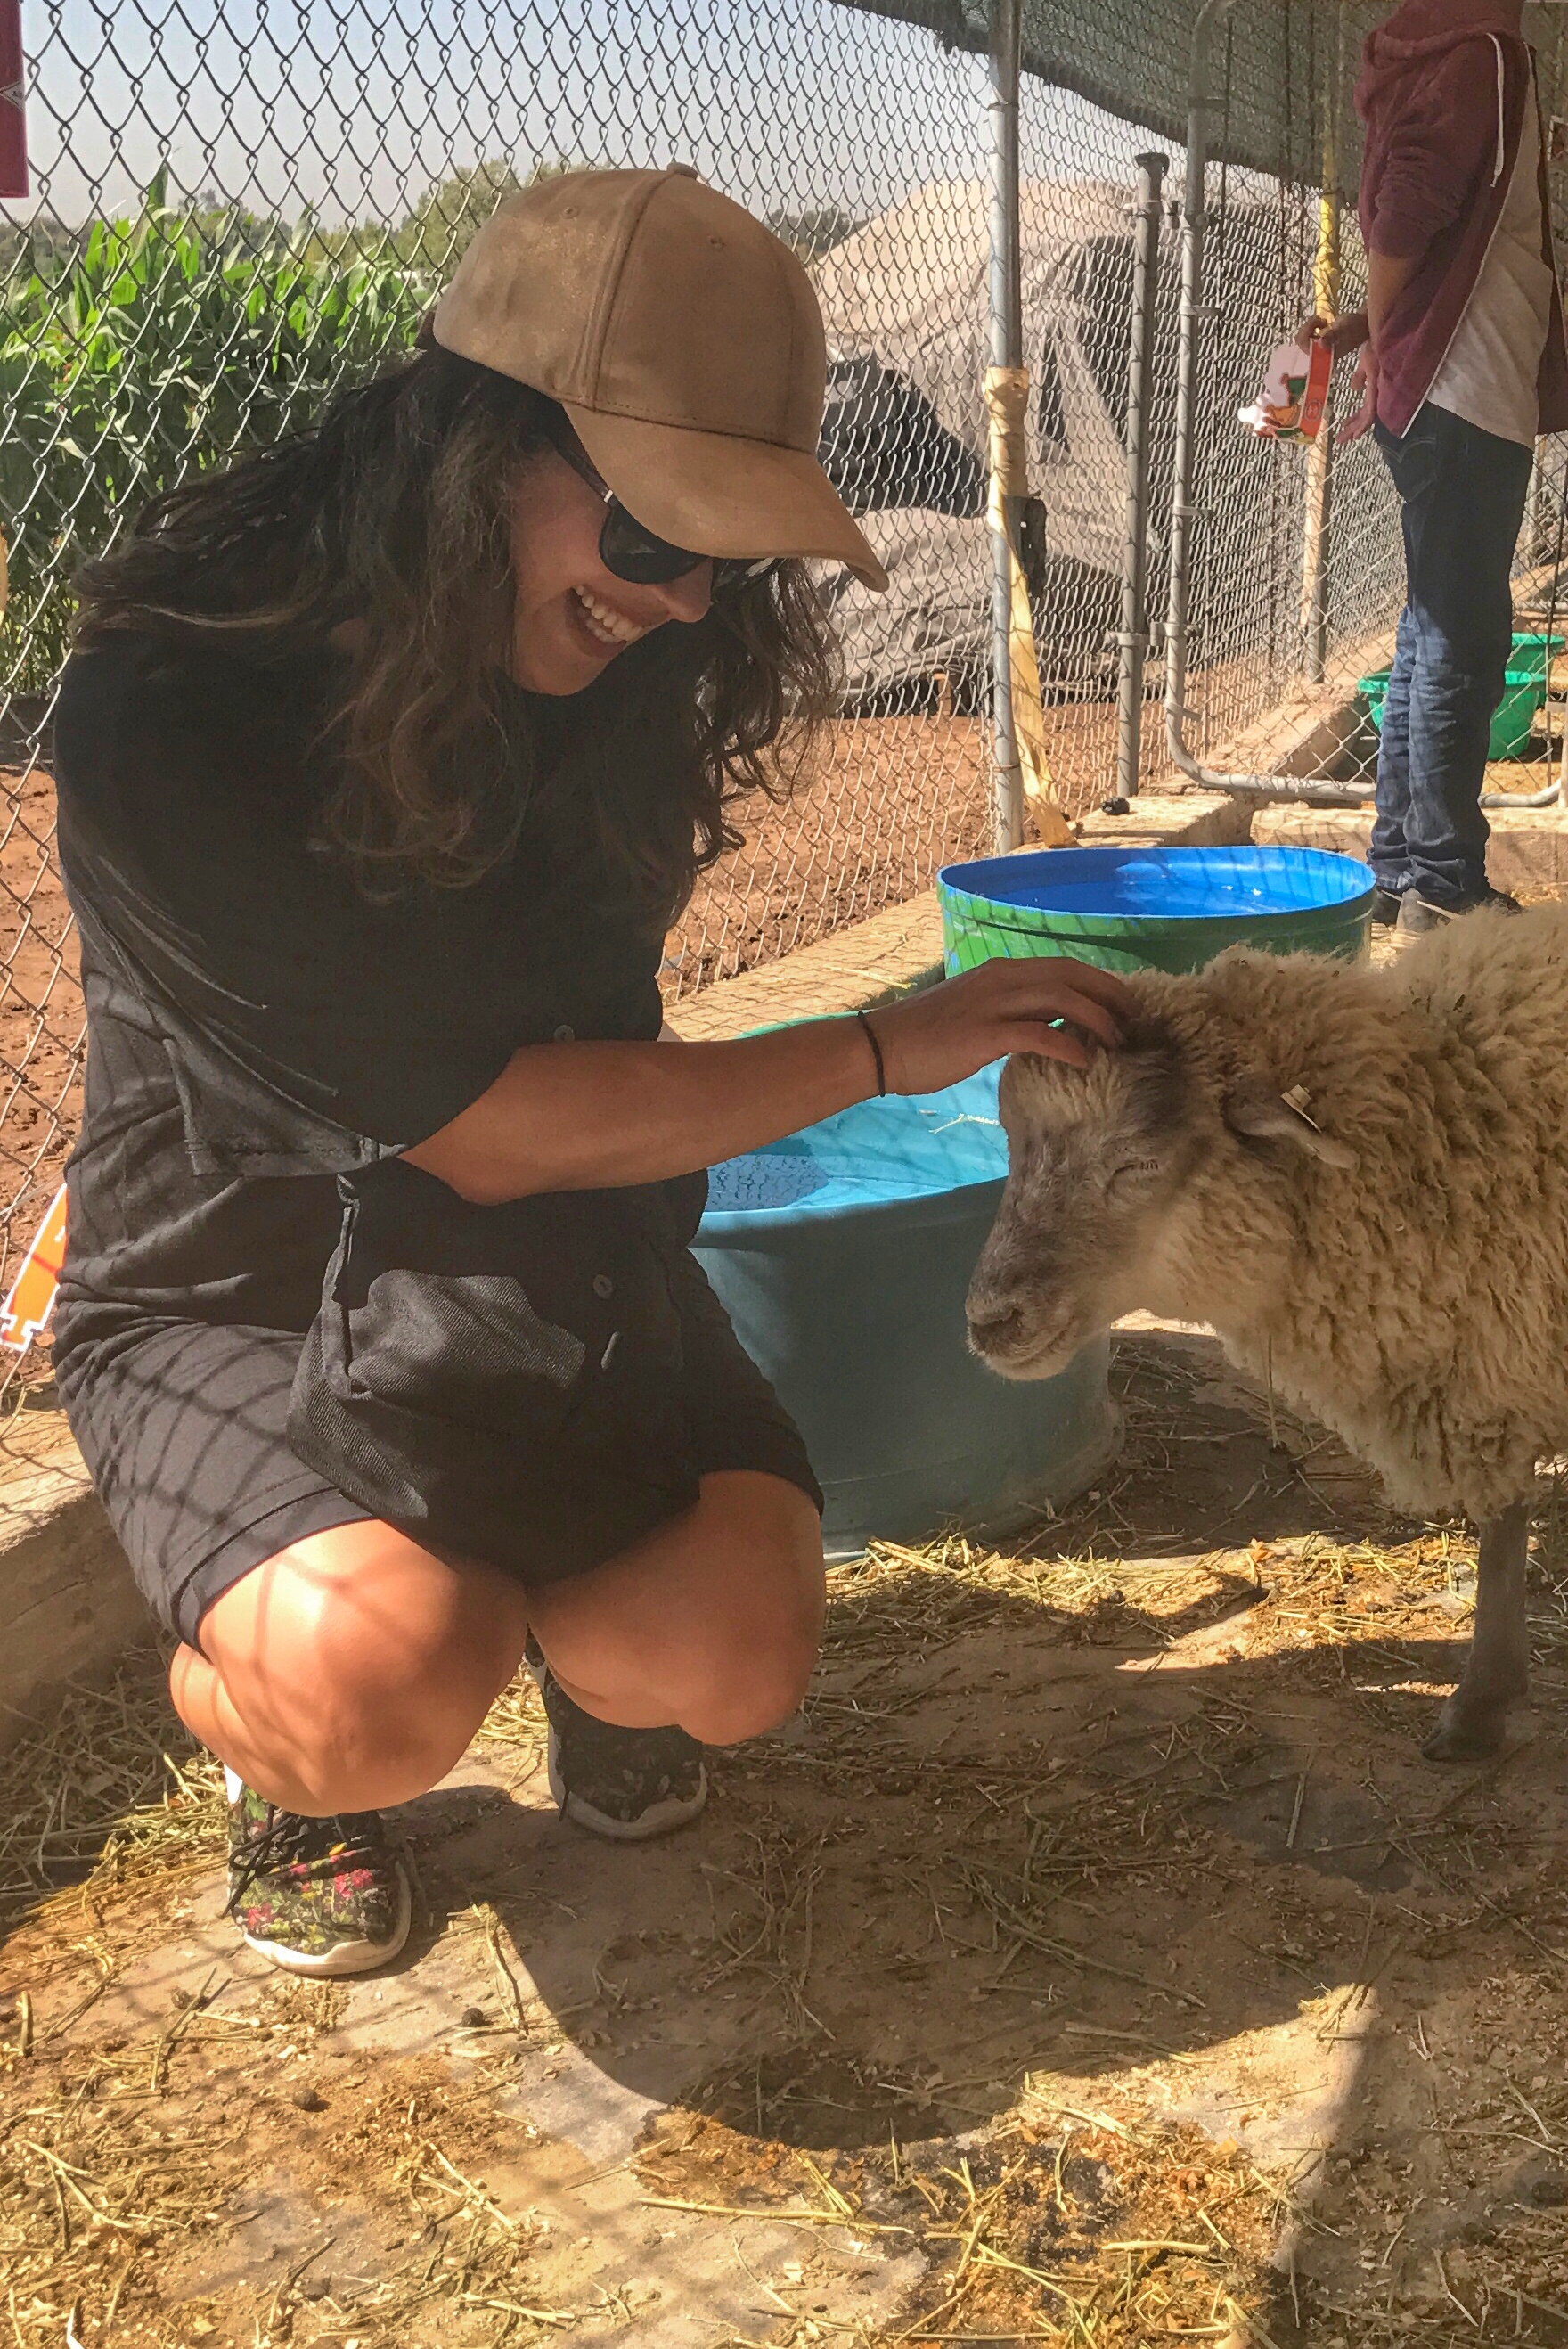 Farm animals and sheep at Tanaka Farms in Irvine California